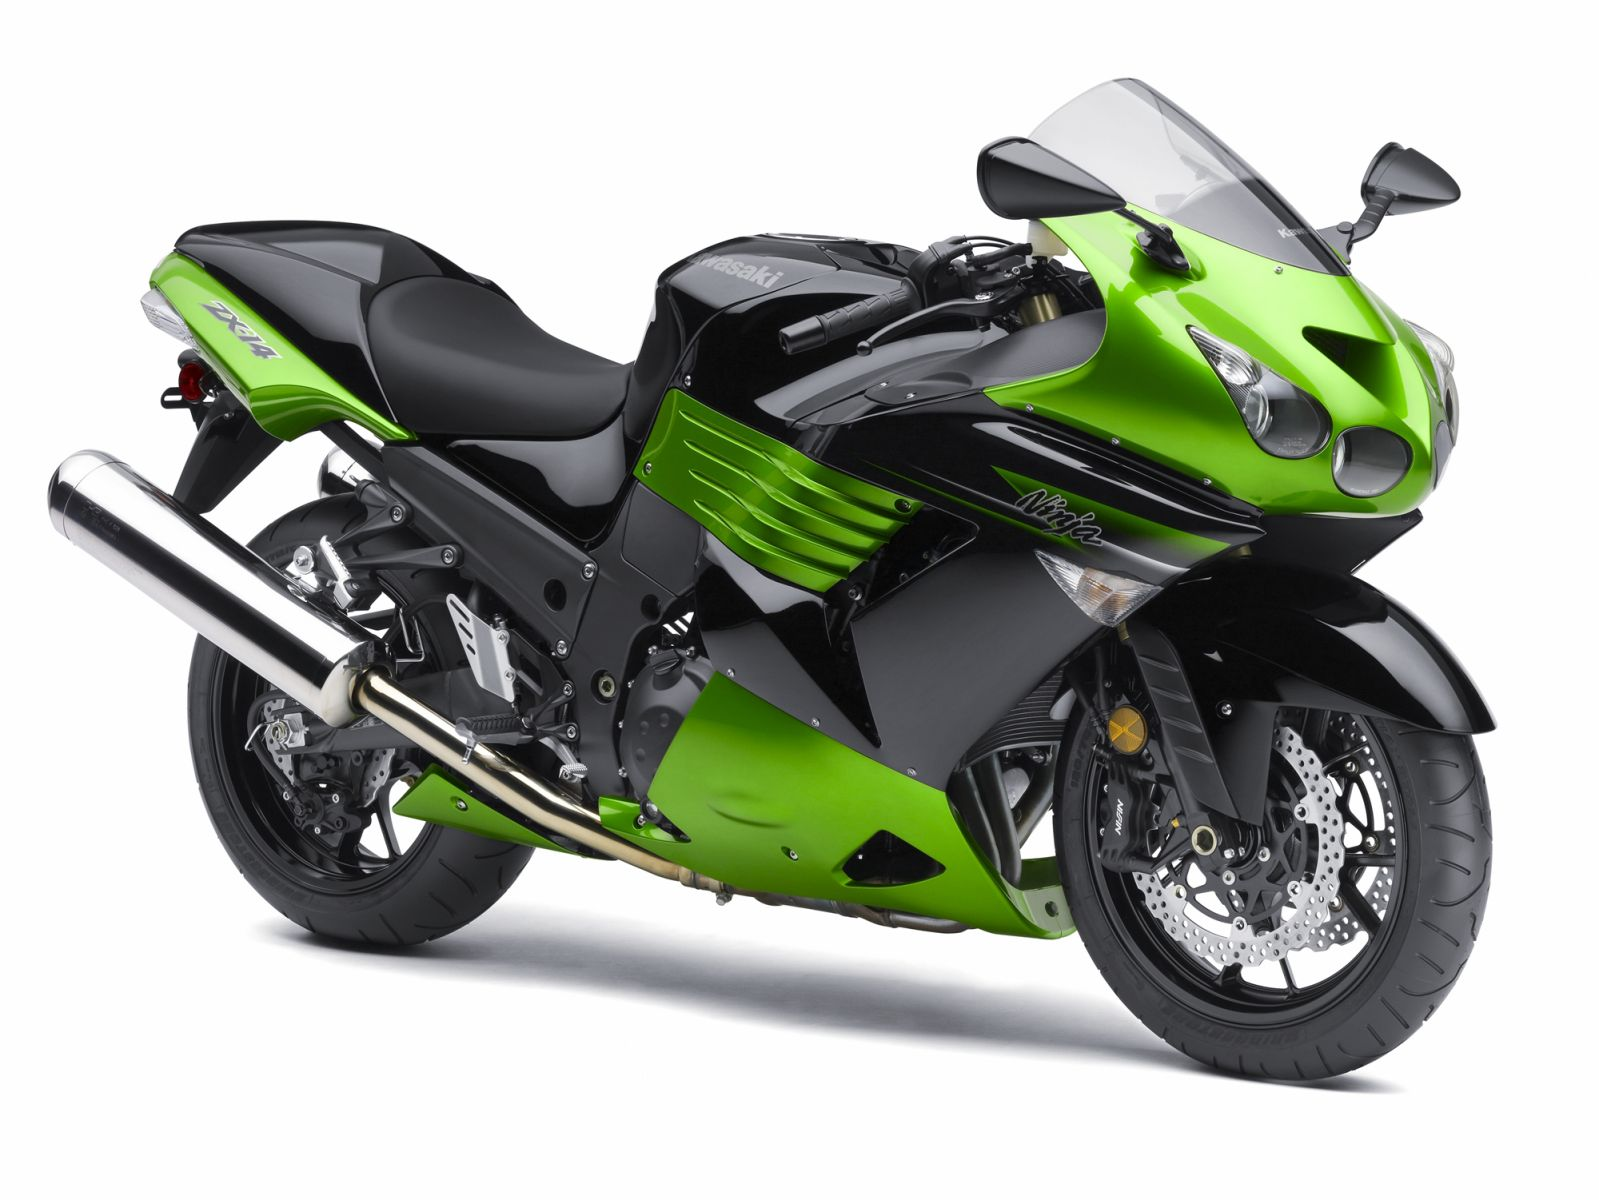 Images moreover Kawasaki Zzr 1400zx R 14 Special Edition 2008 as well 2012 Kawasaki Zzr1400 Is The Worlds Fastest Motorcycle additionally Kawasaki Motorcycles For Sale In Westminster Colorado besides Overview. on kawasaki ninja zx 14 horsepower